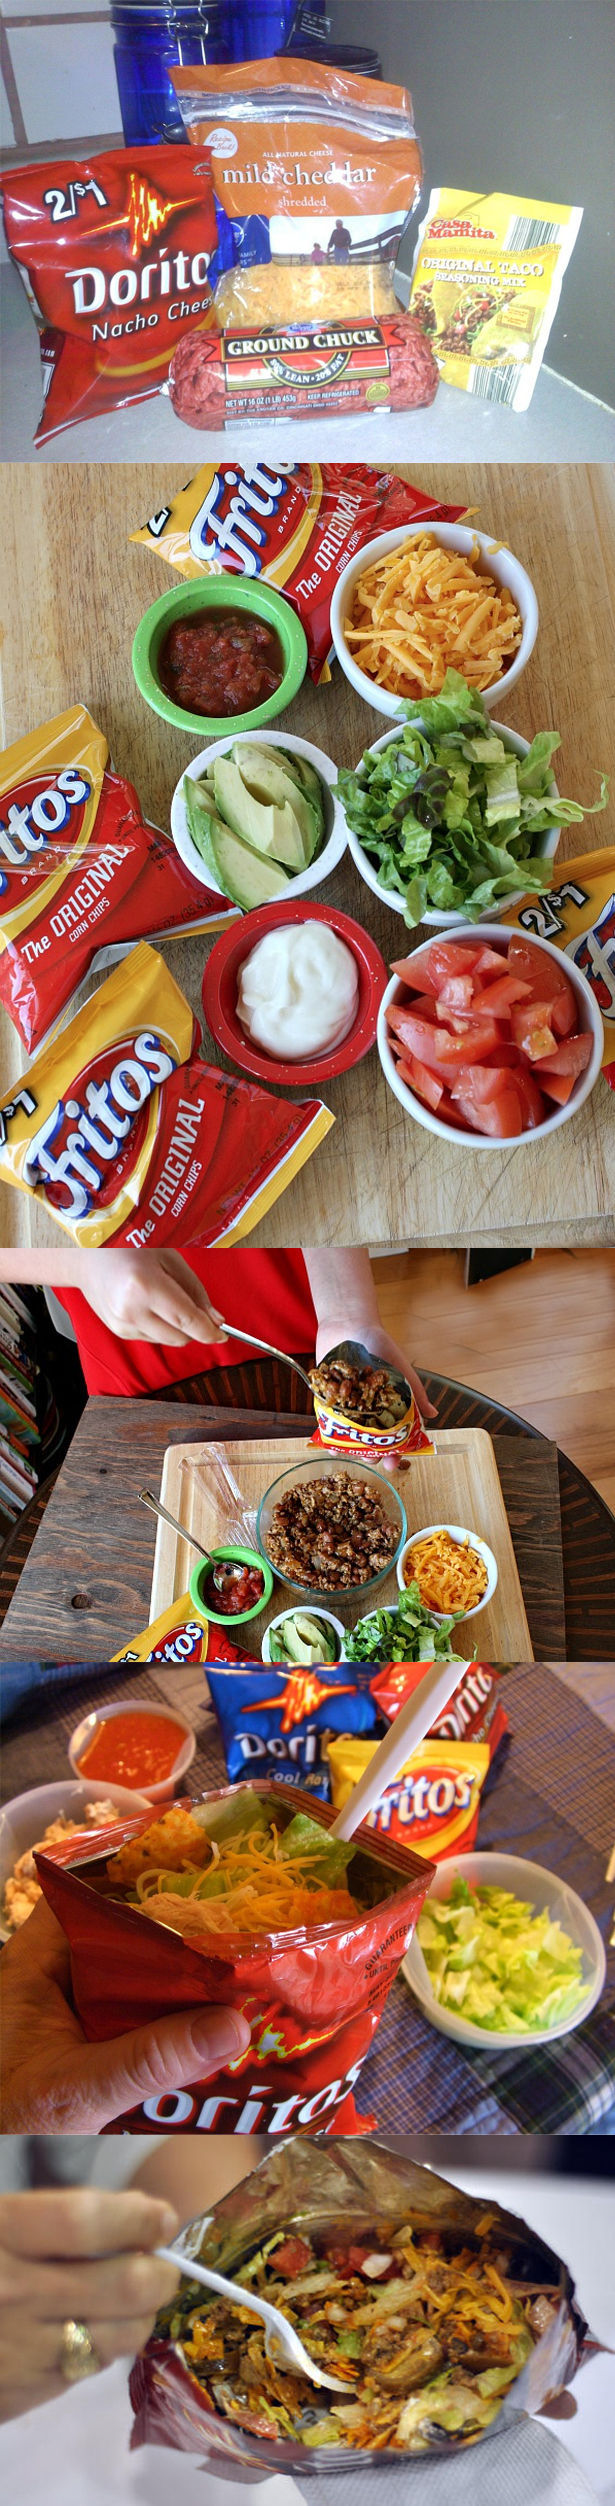 Helpful Hacks That Will Make Eating Food So Much Simpler